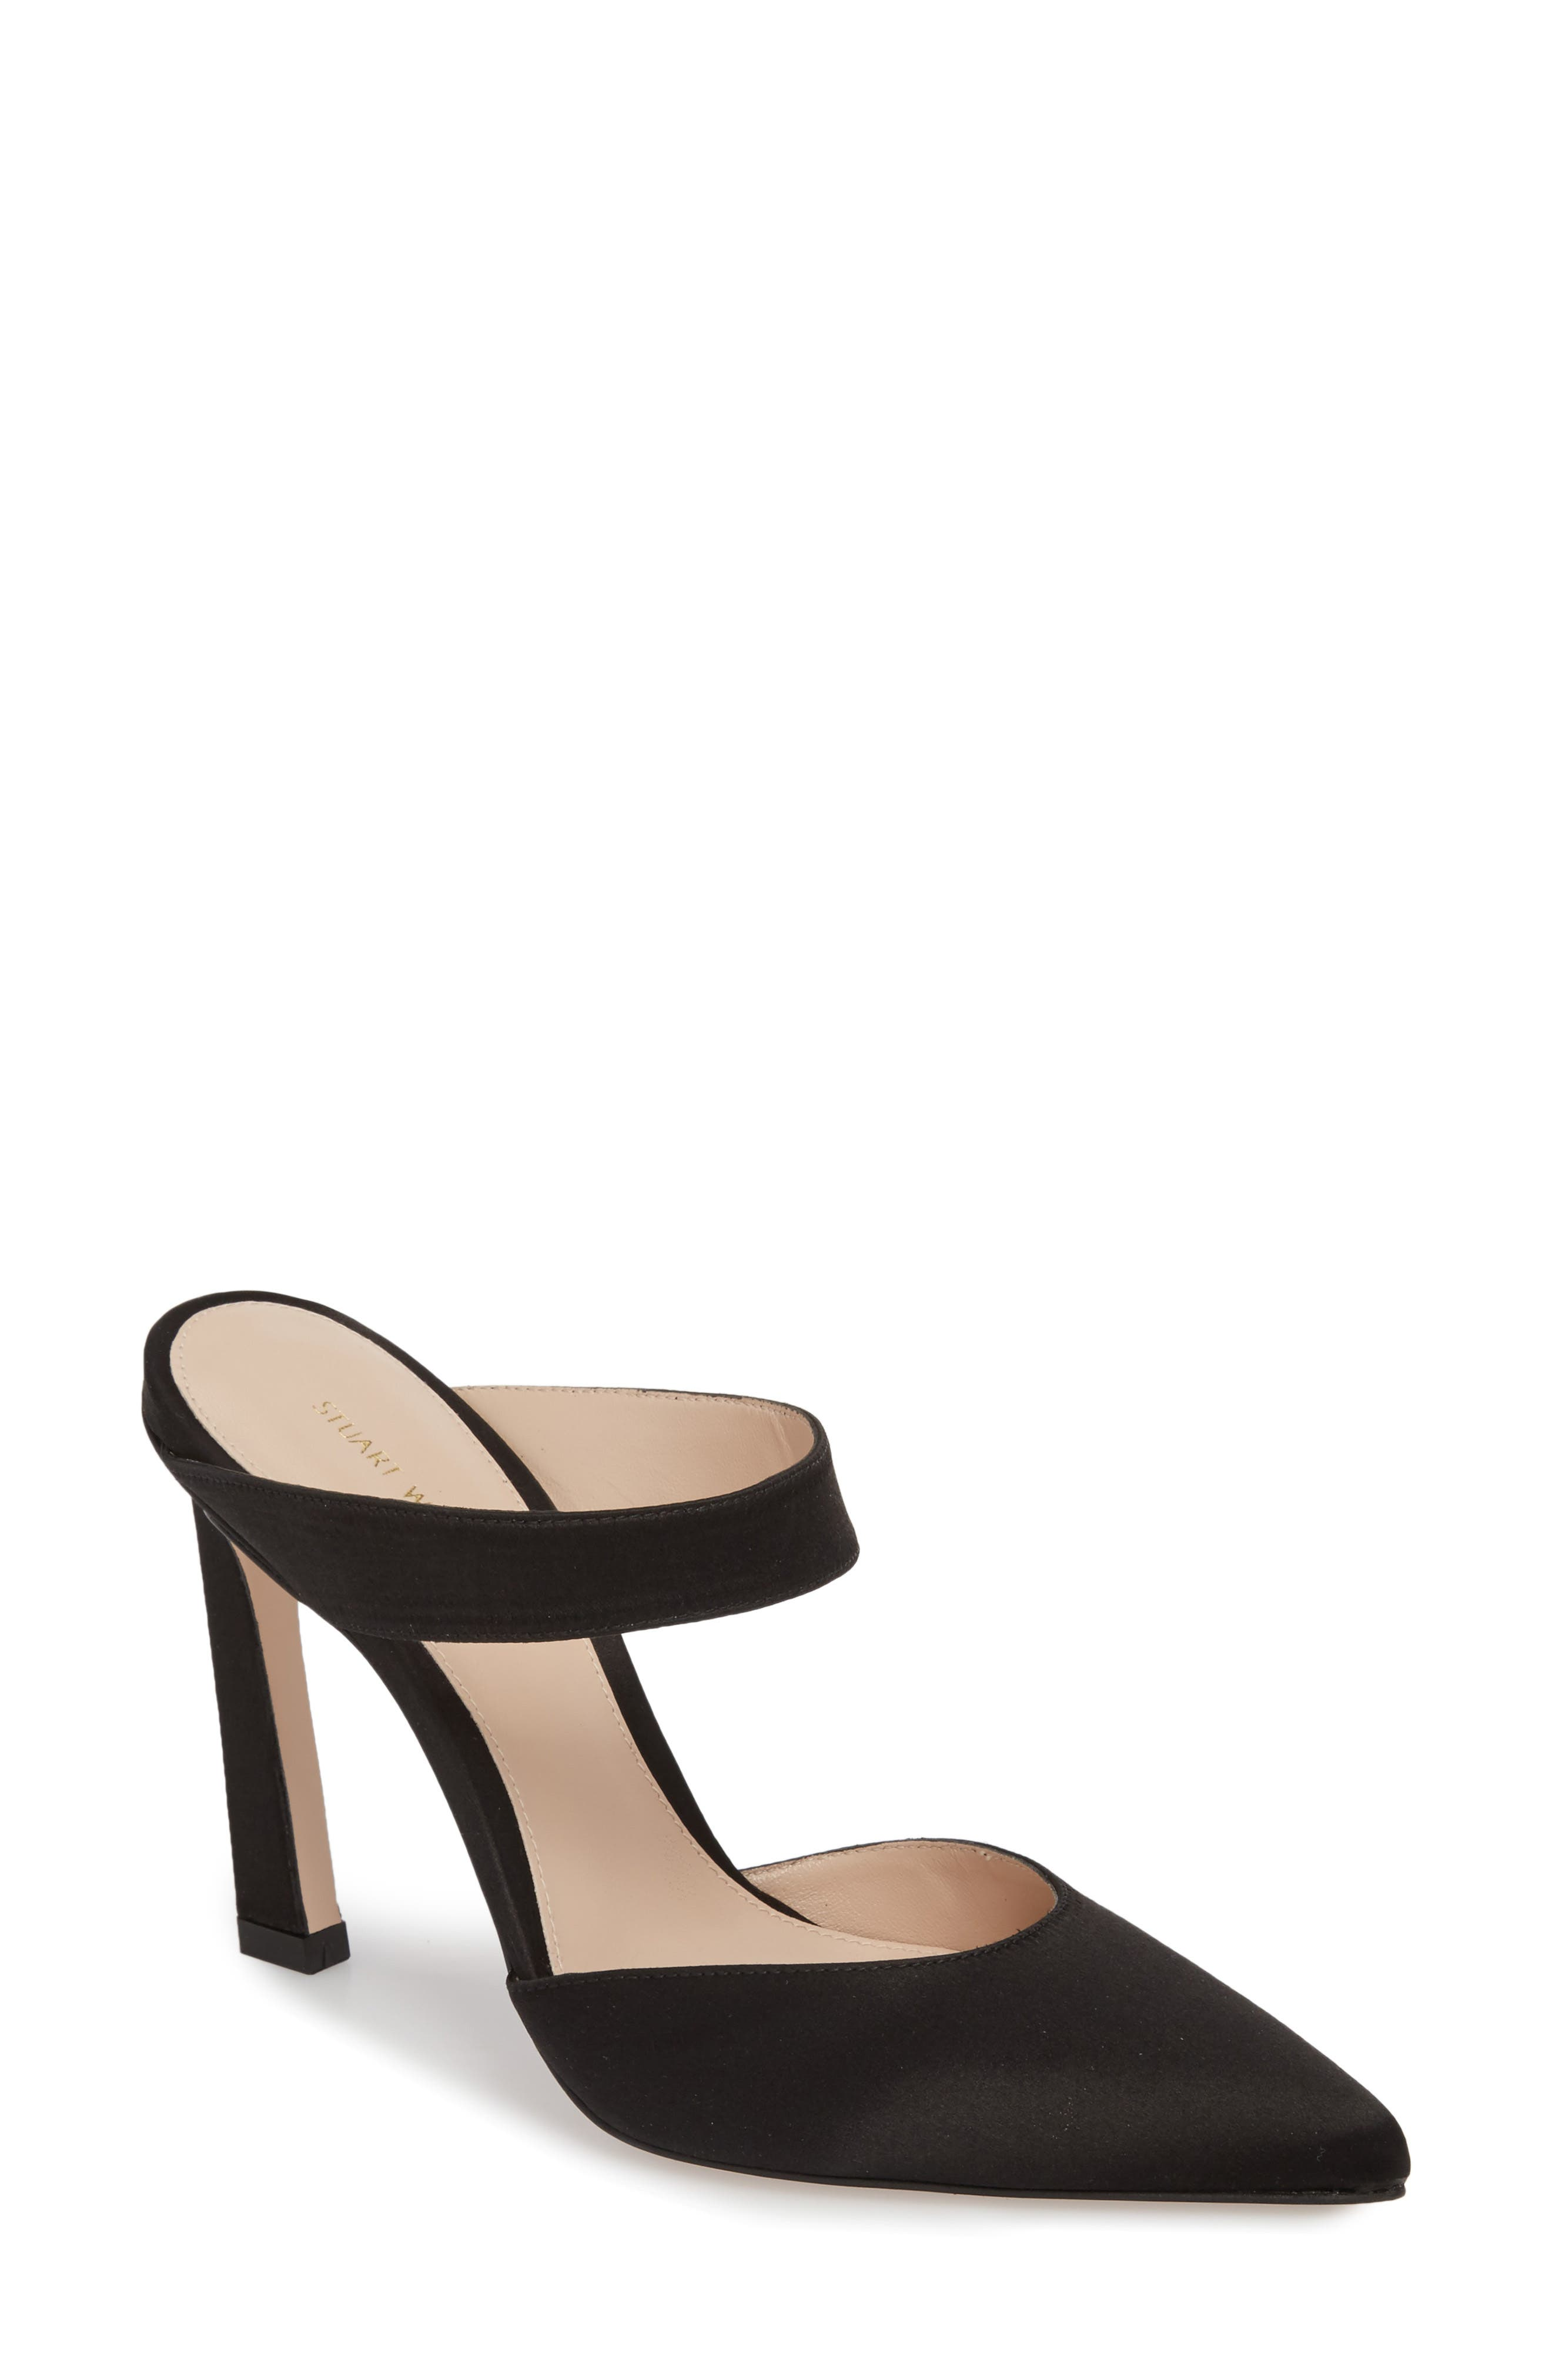 Event Pointy Toe Pump,                         Main,                         color, 002